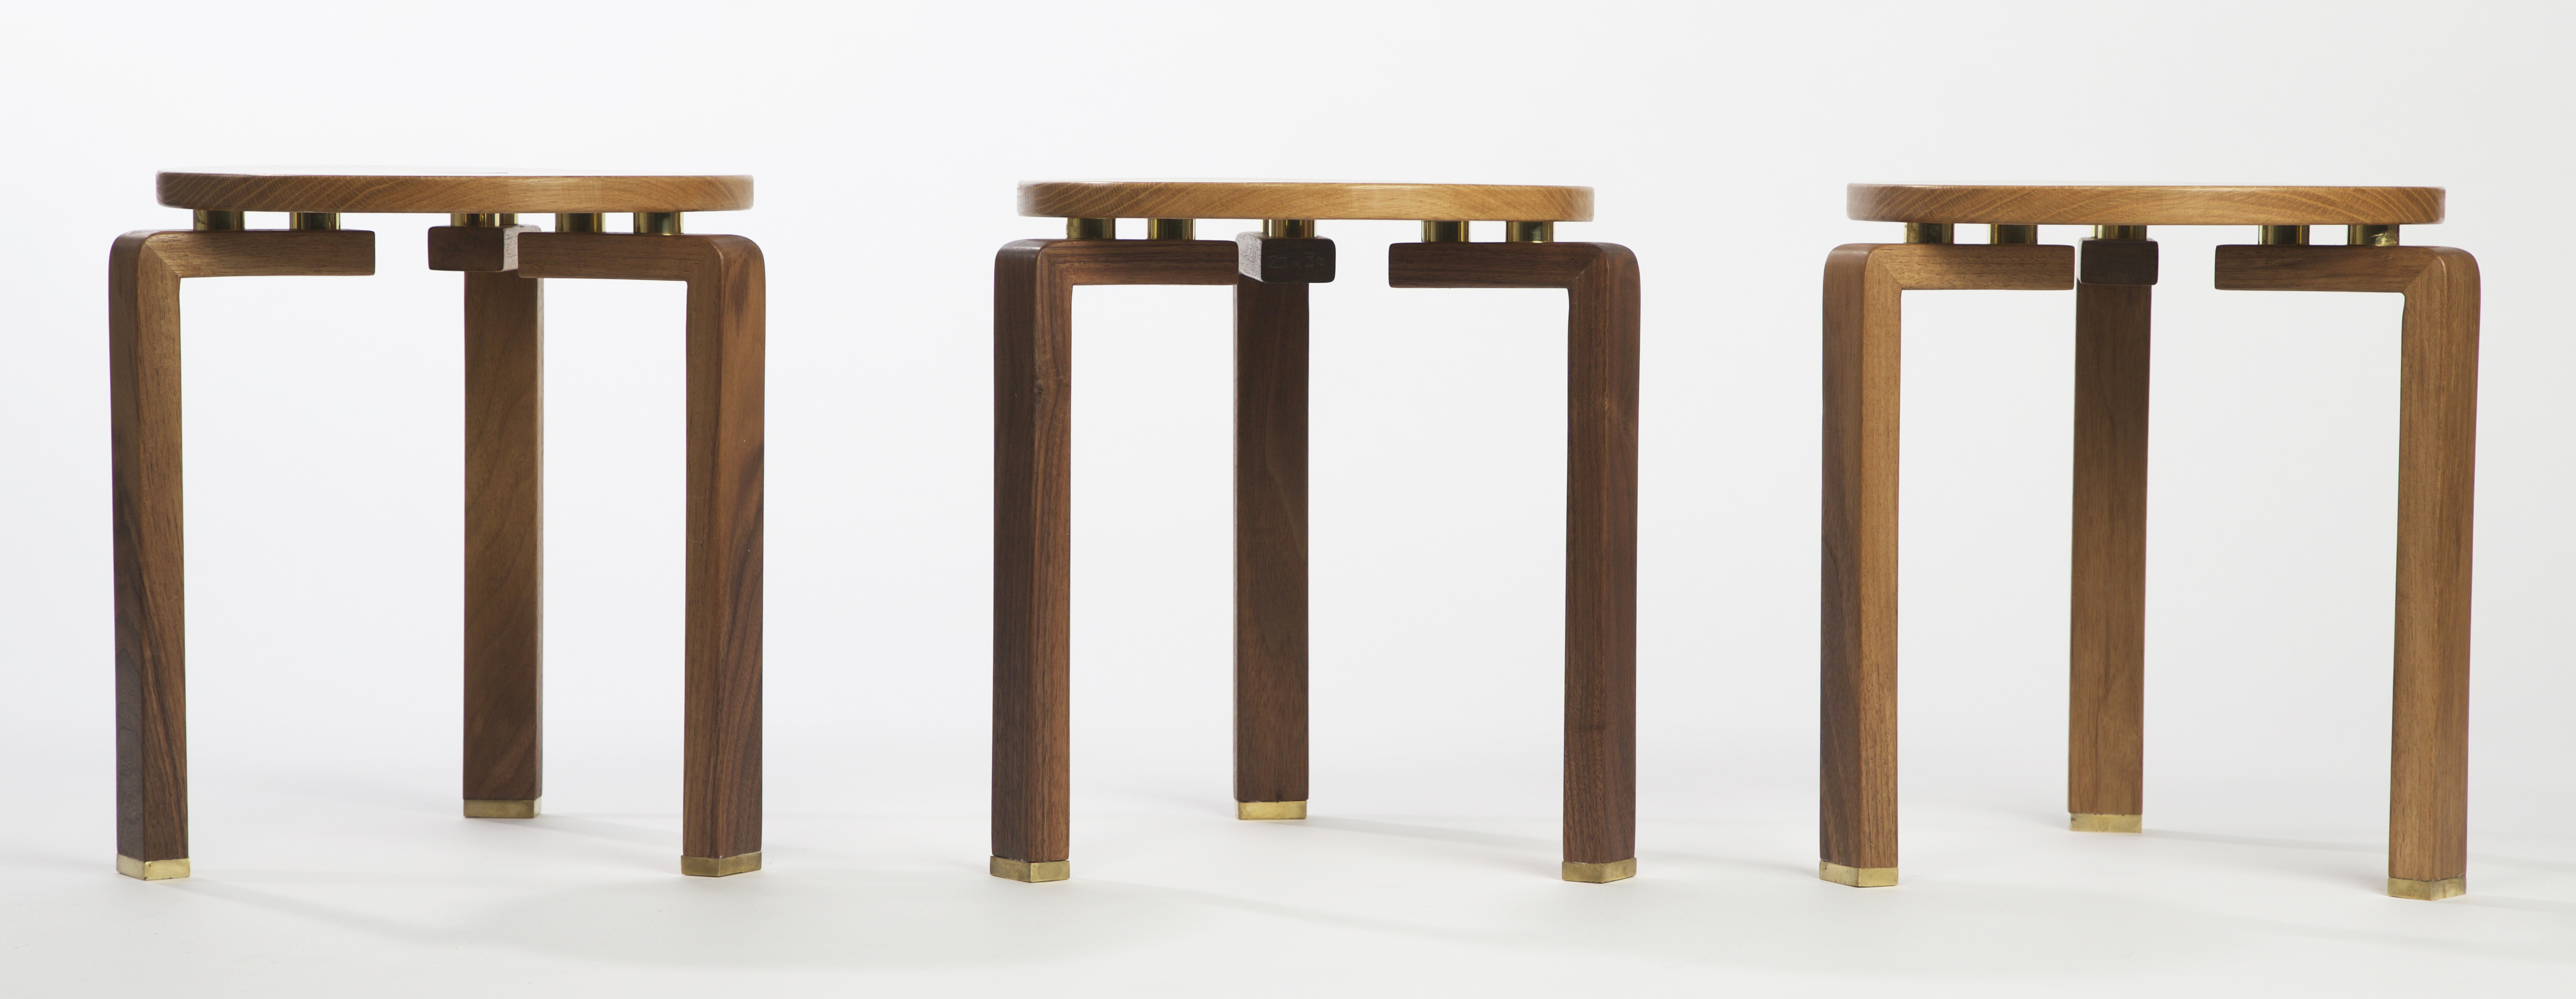 Zanna stools/side tables